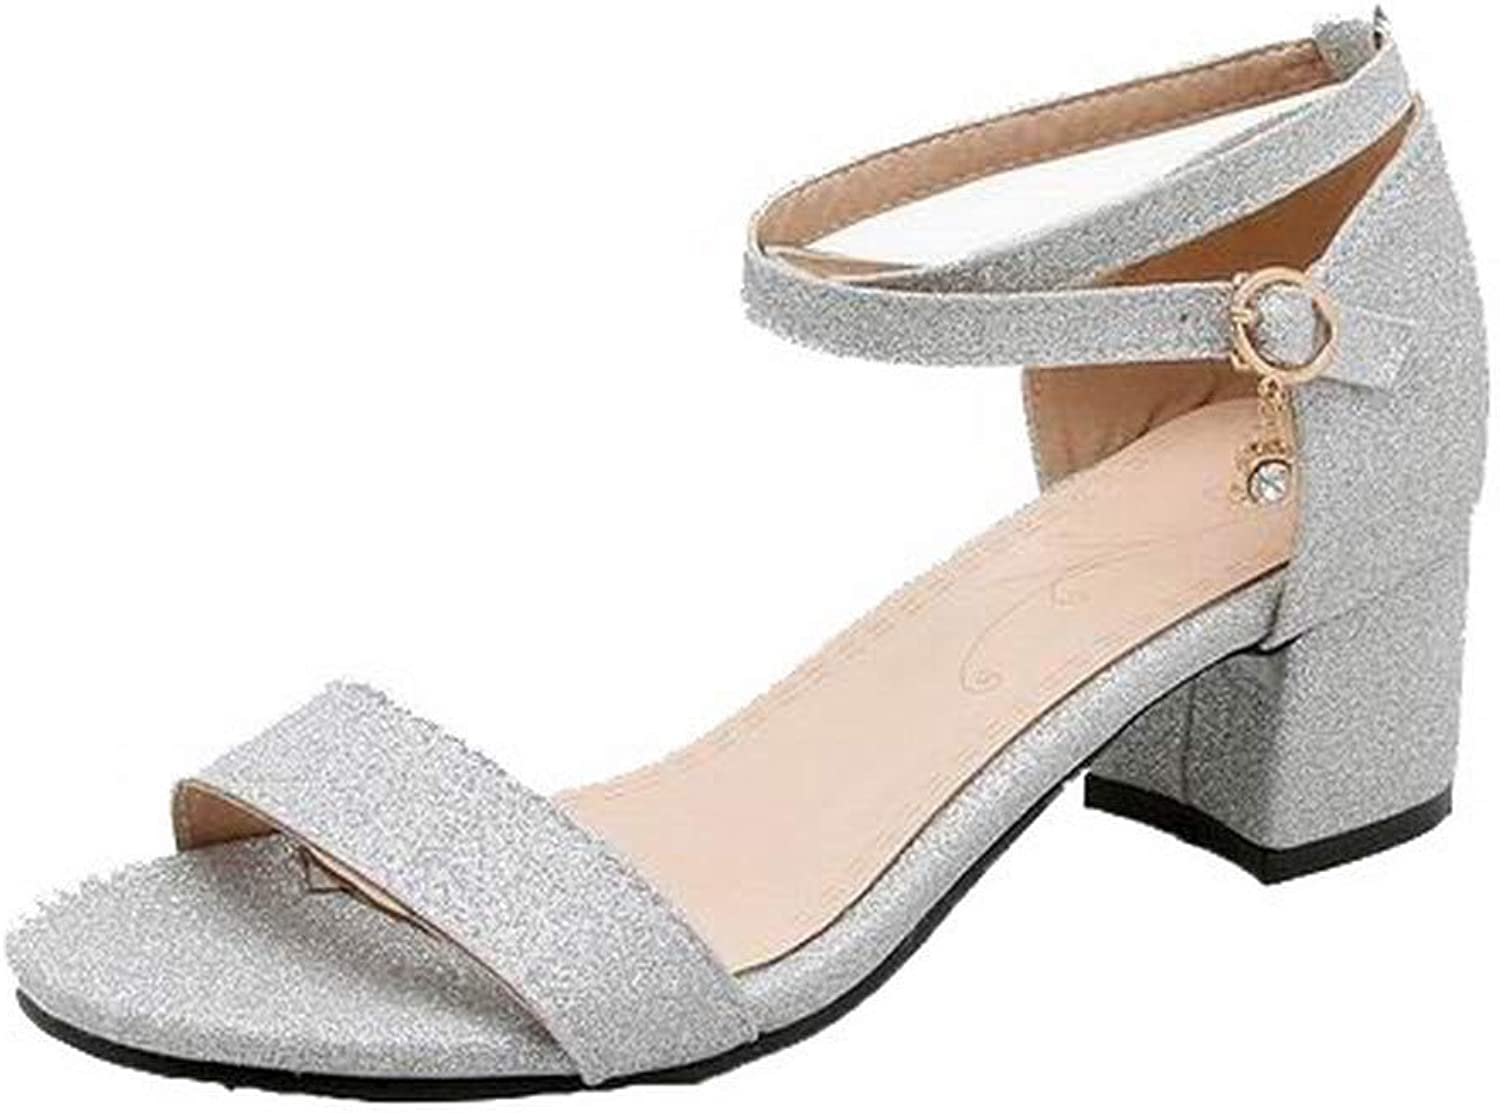 WeenFashion Women's Buckle Open-Toe Low-Heels Imitated Suede Sandals,AMGLX010639